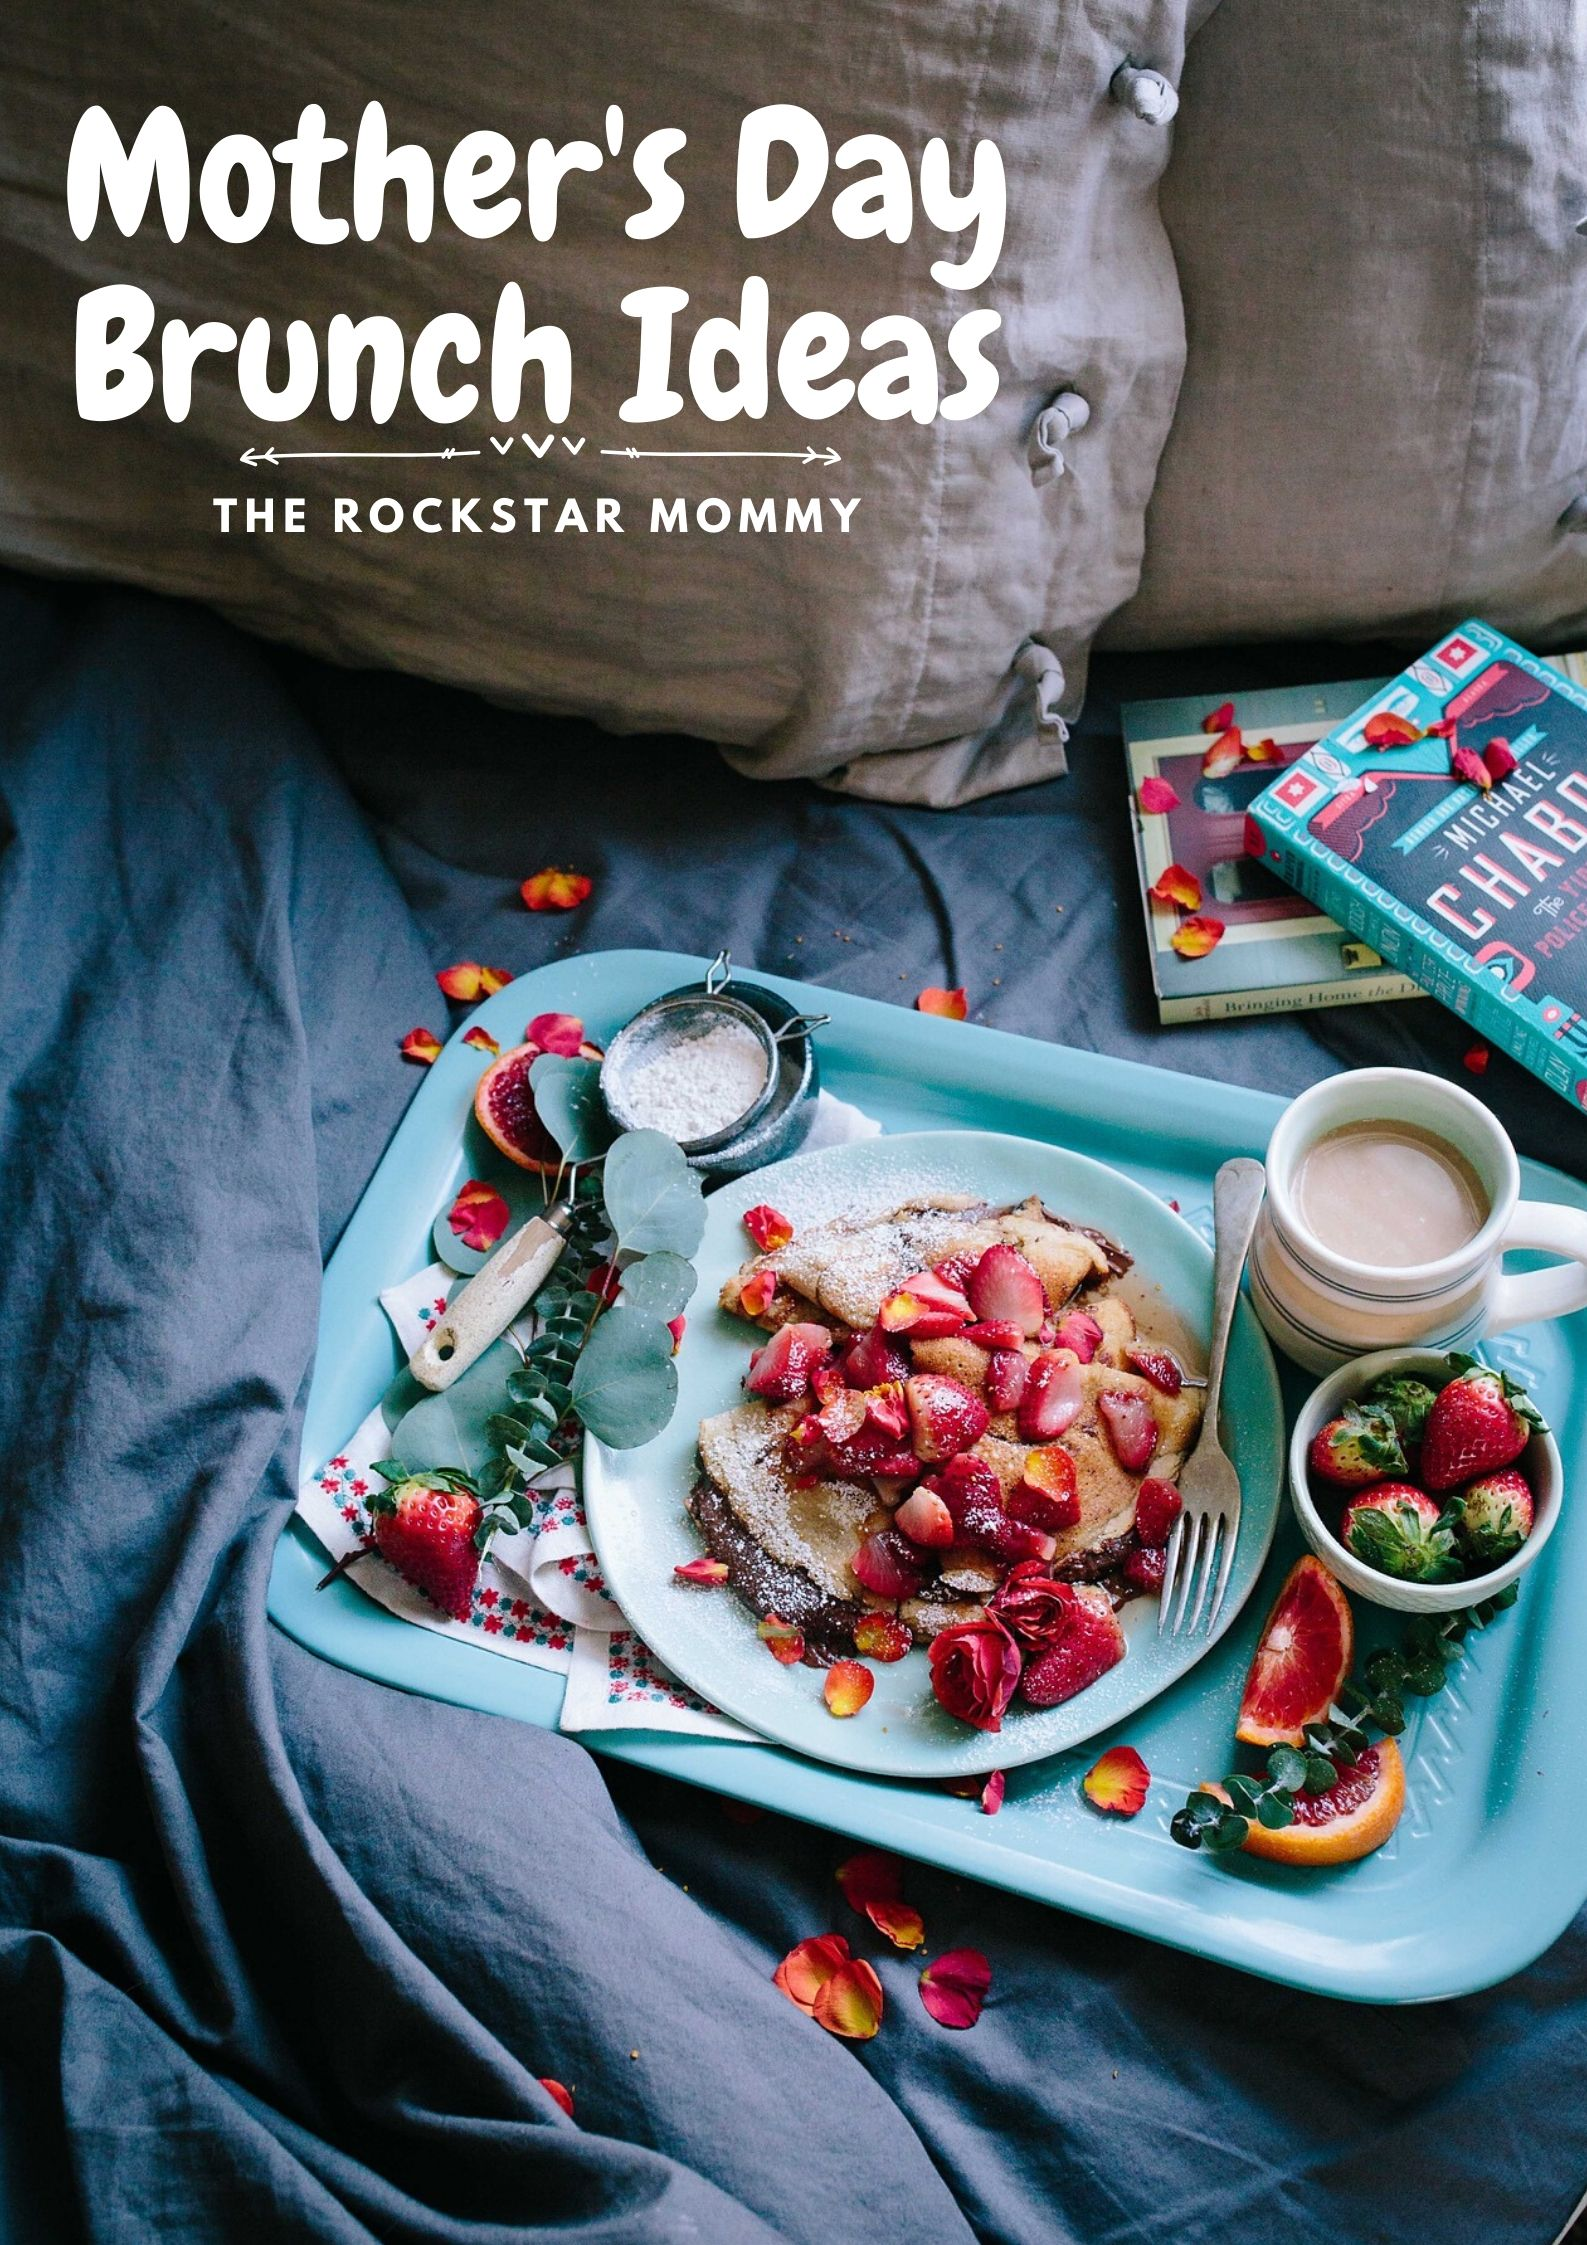 Mother's Day Brunch Ideas - The Rockstar Mommy